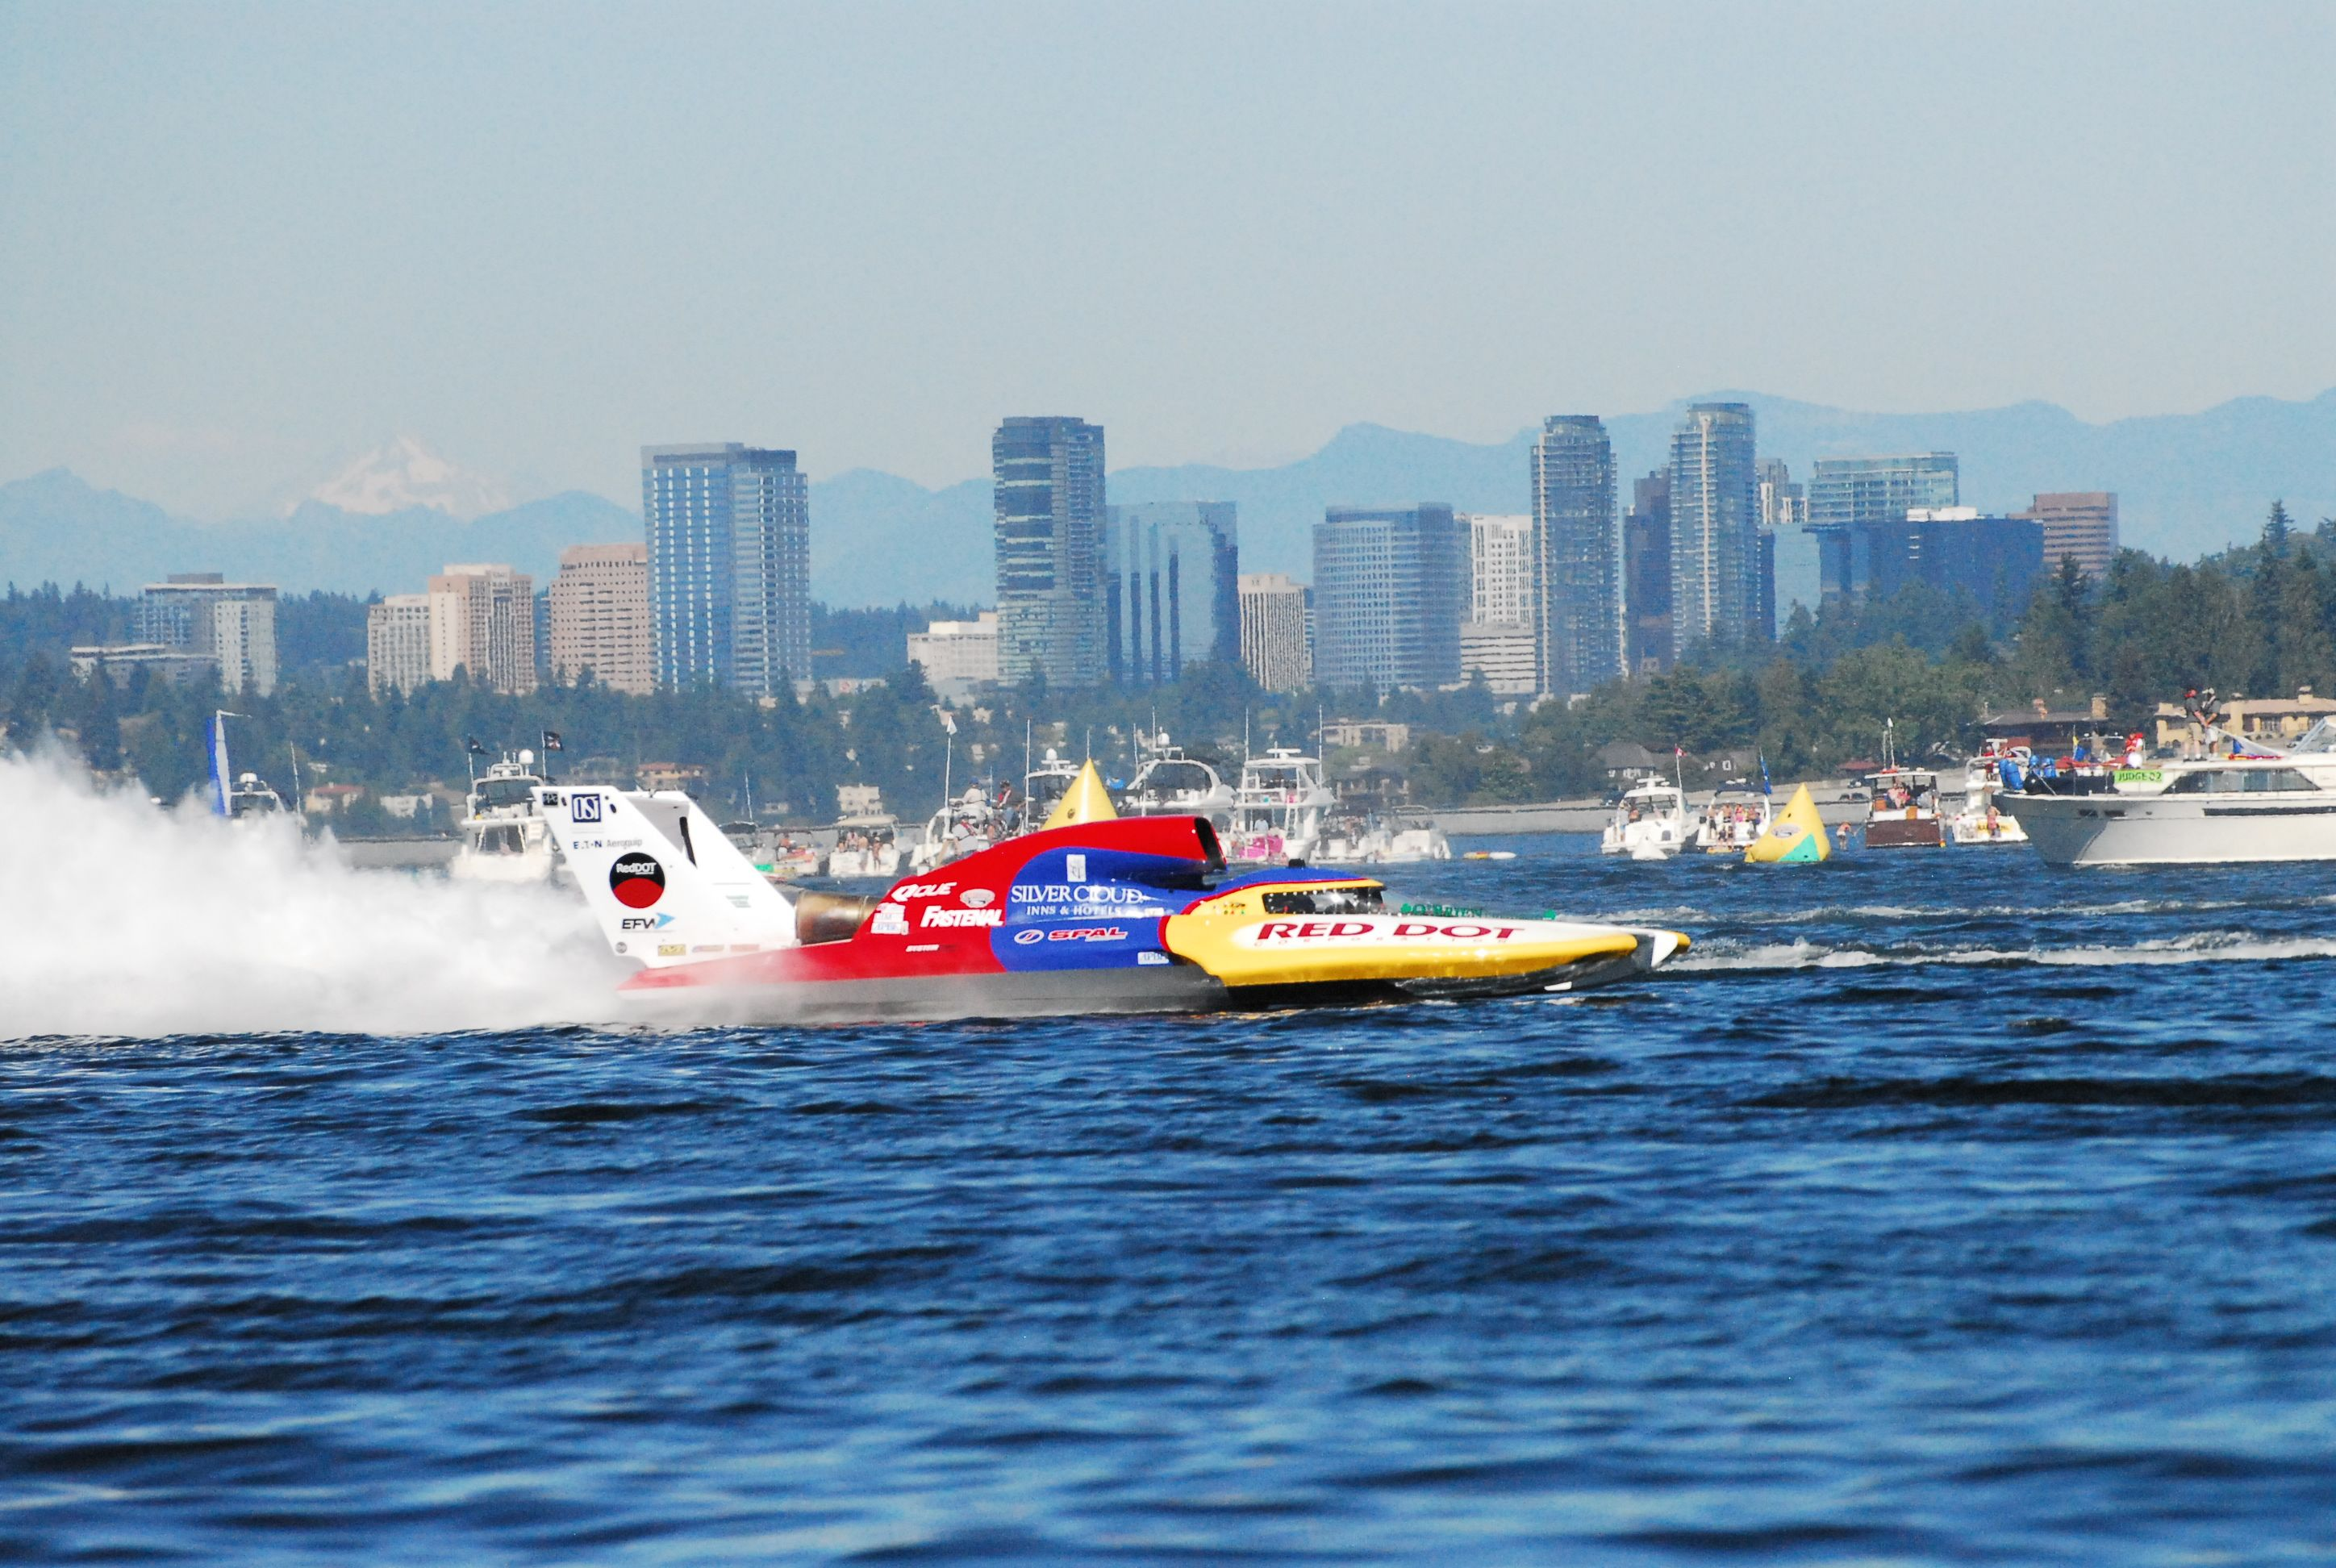 Boat image by Seafair Festival on Albert Lee Appliance Cup